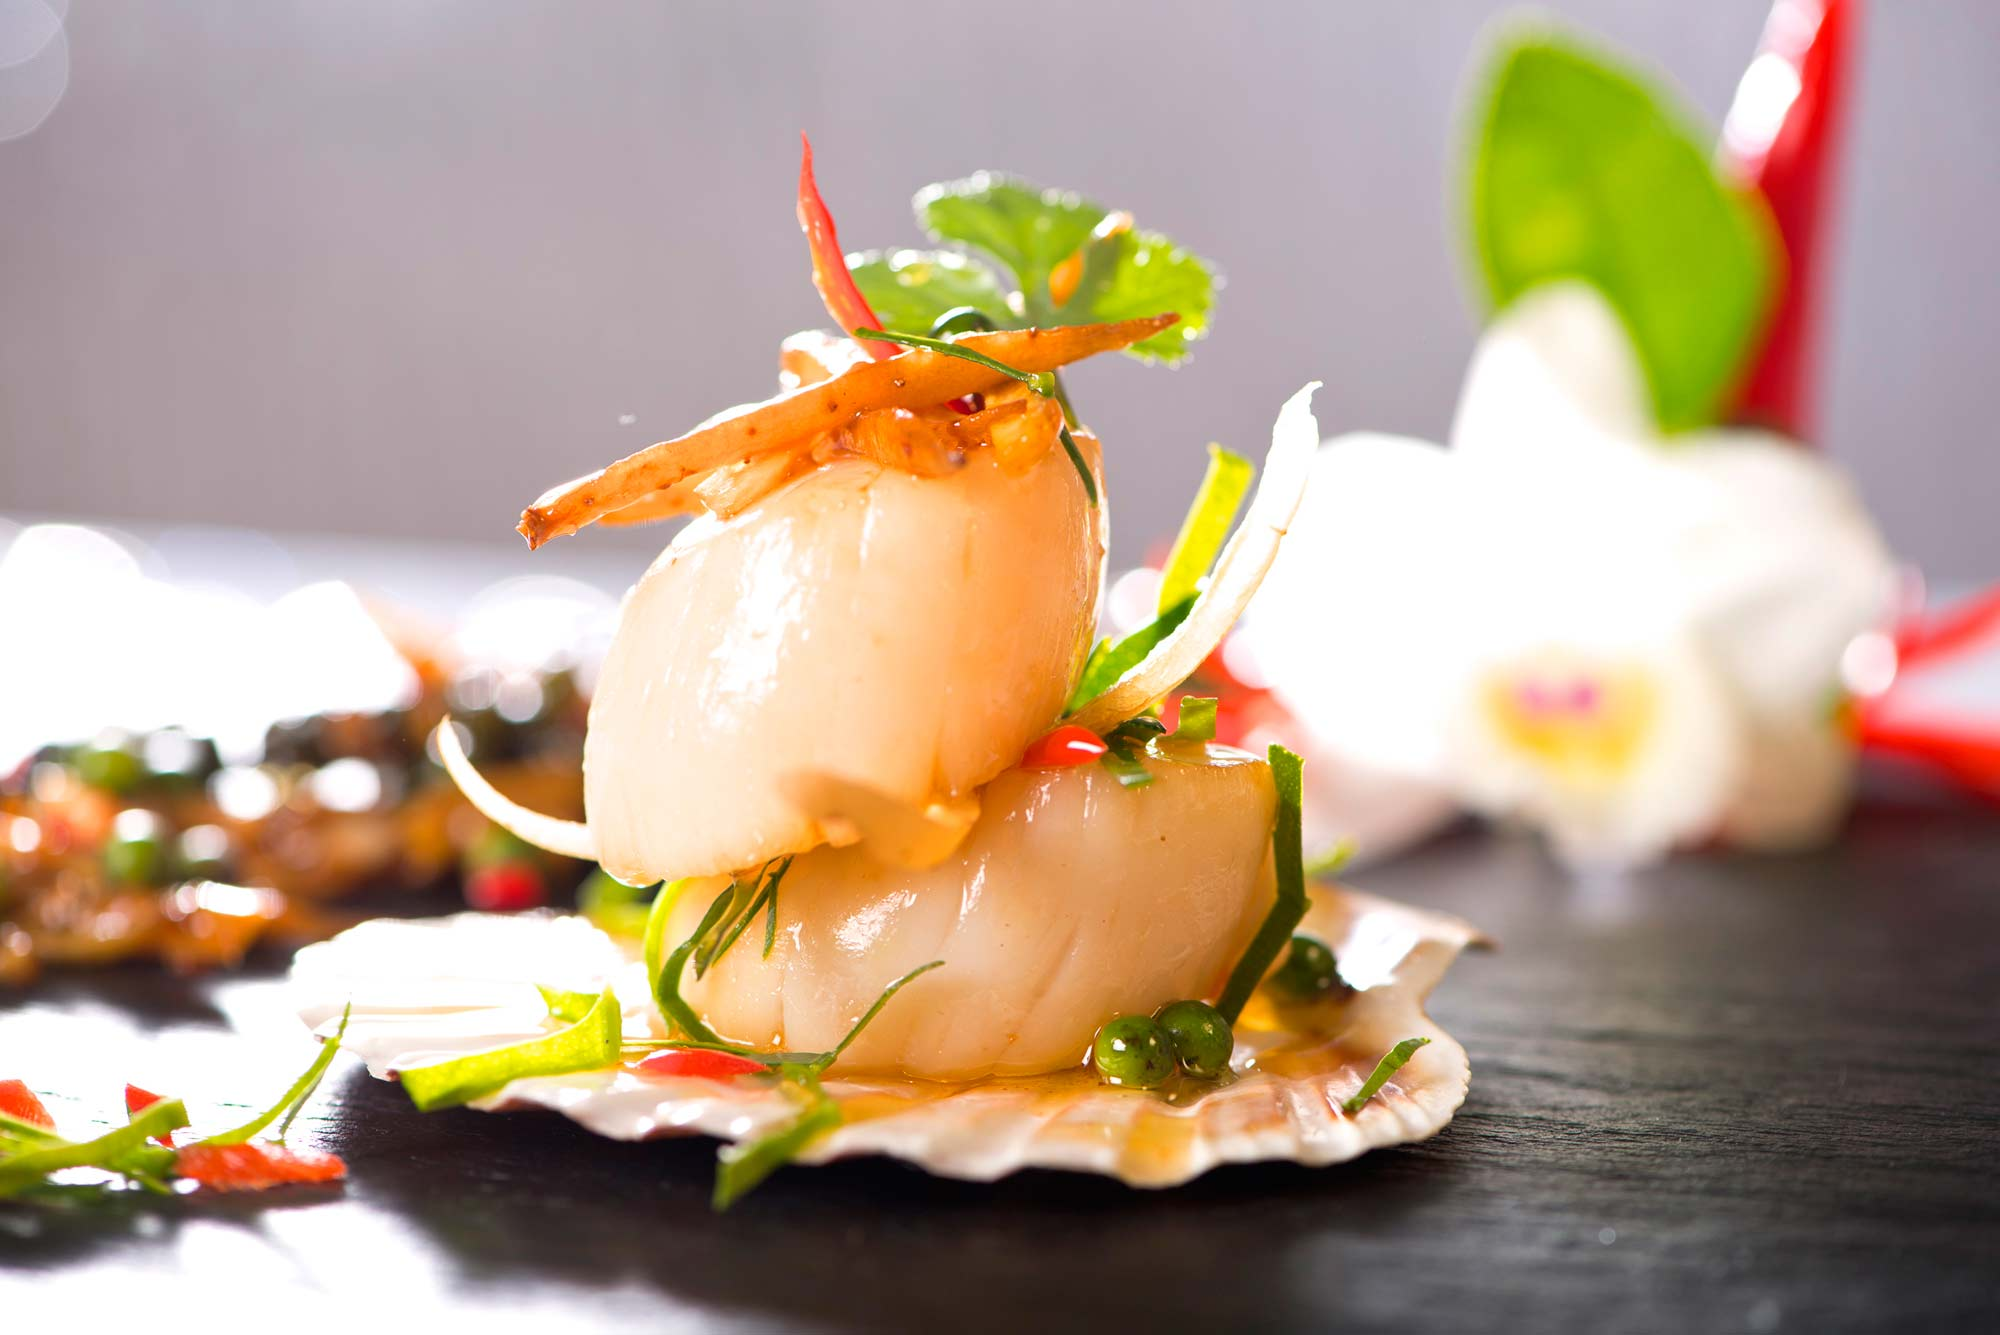 Fried herbal vegetables with Scallop